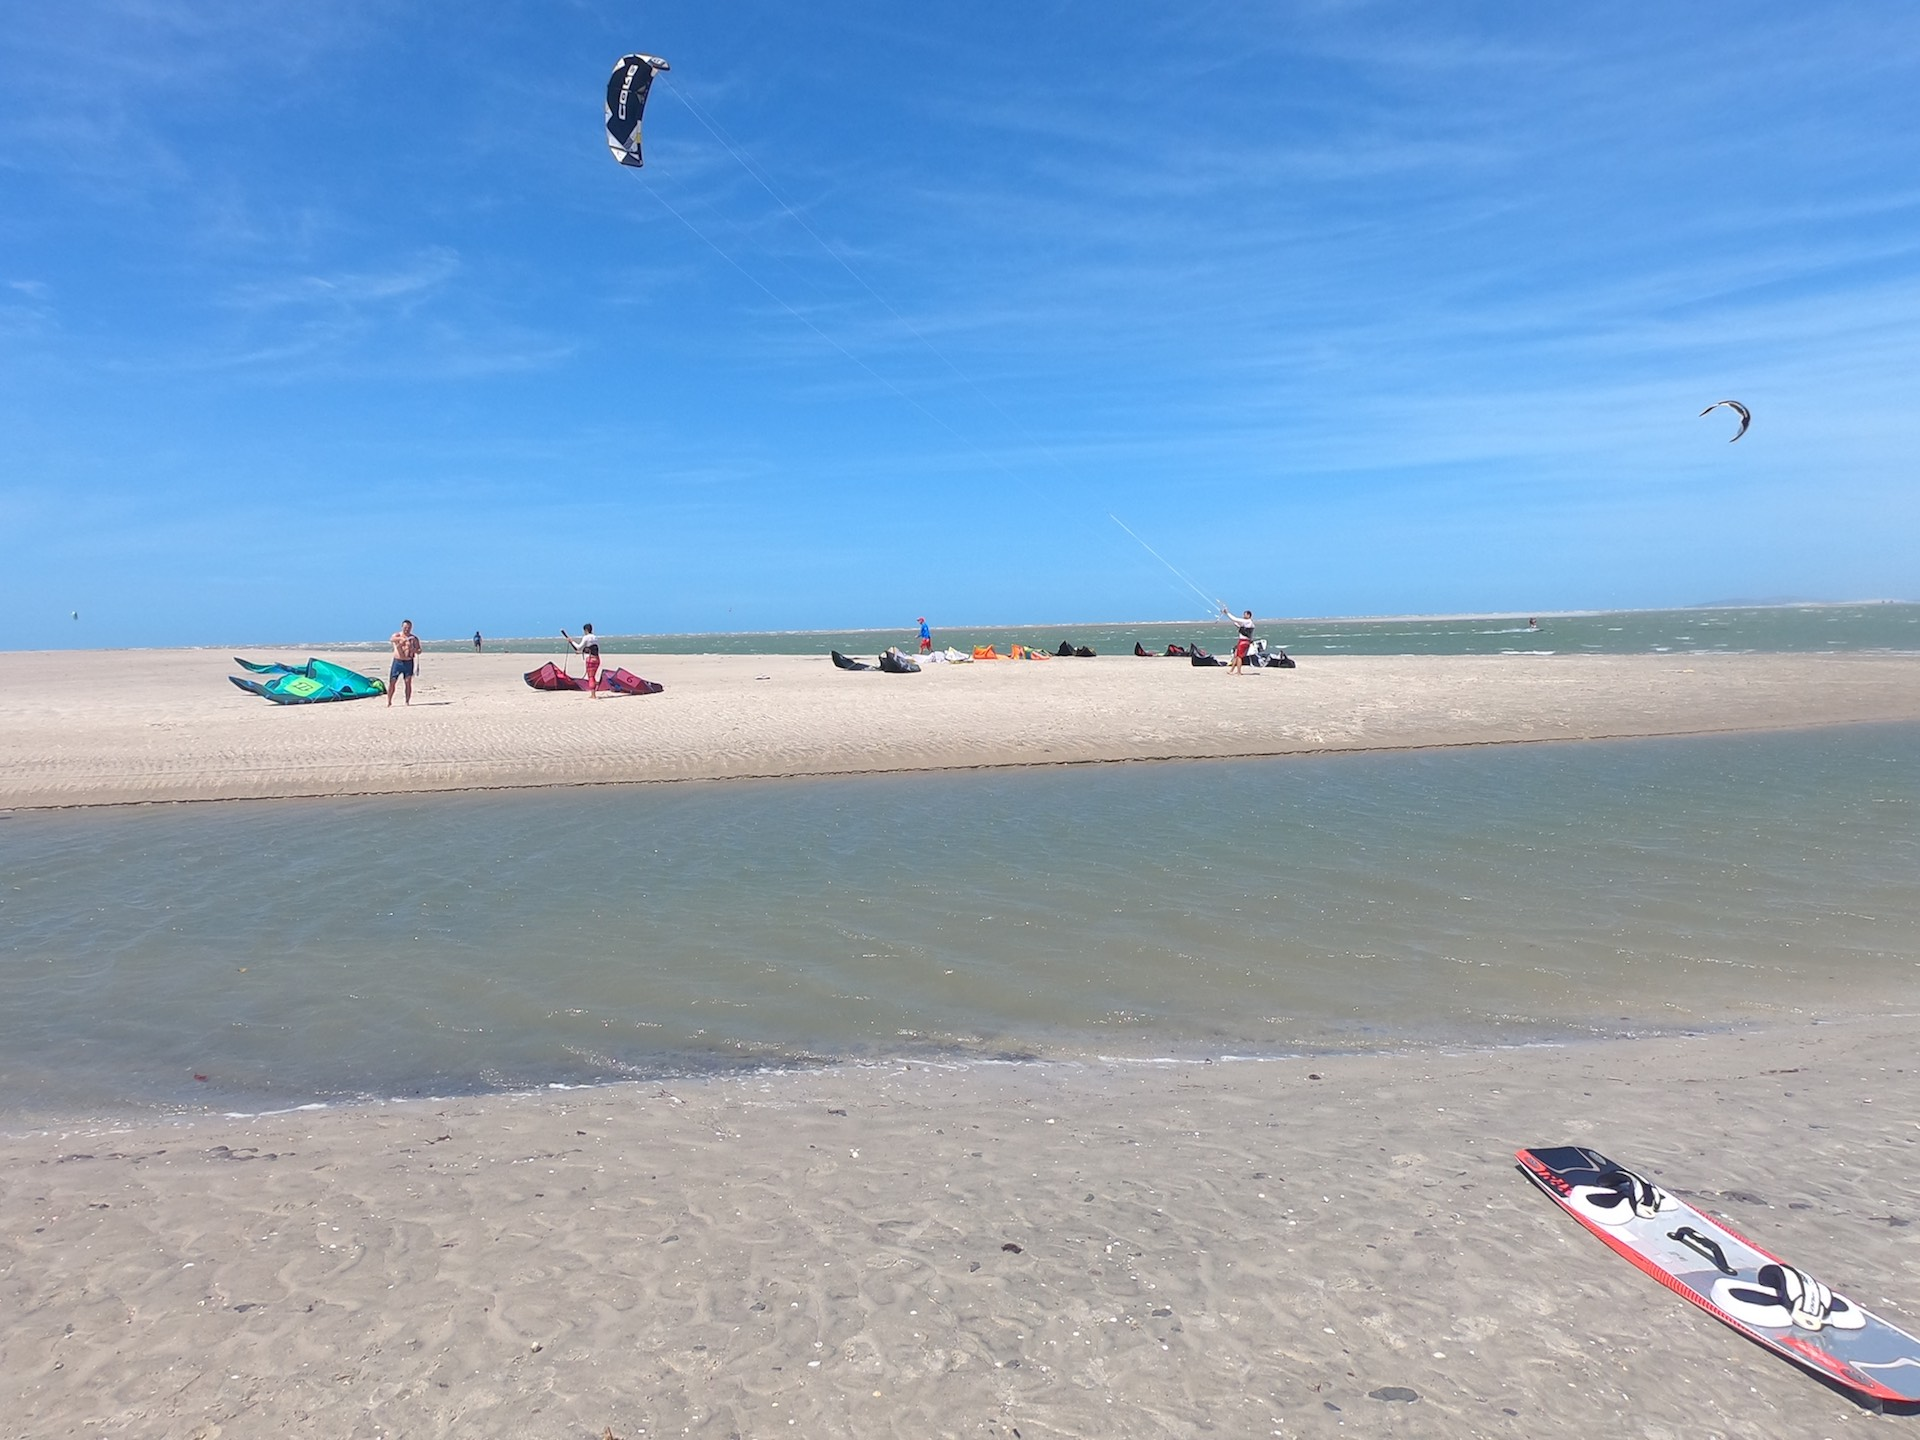 Jericoacoara has a small kite lagoon close a river. A great spot for kiting.